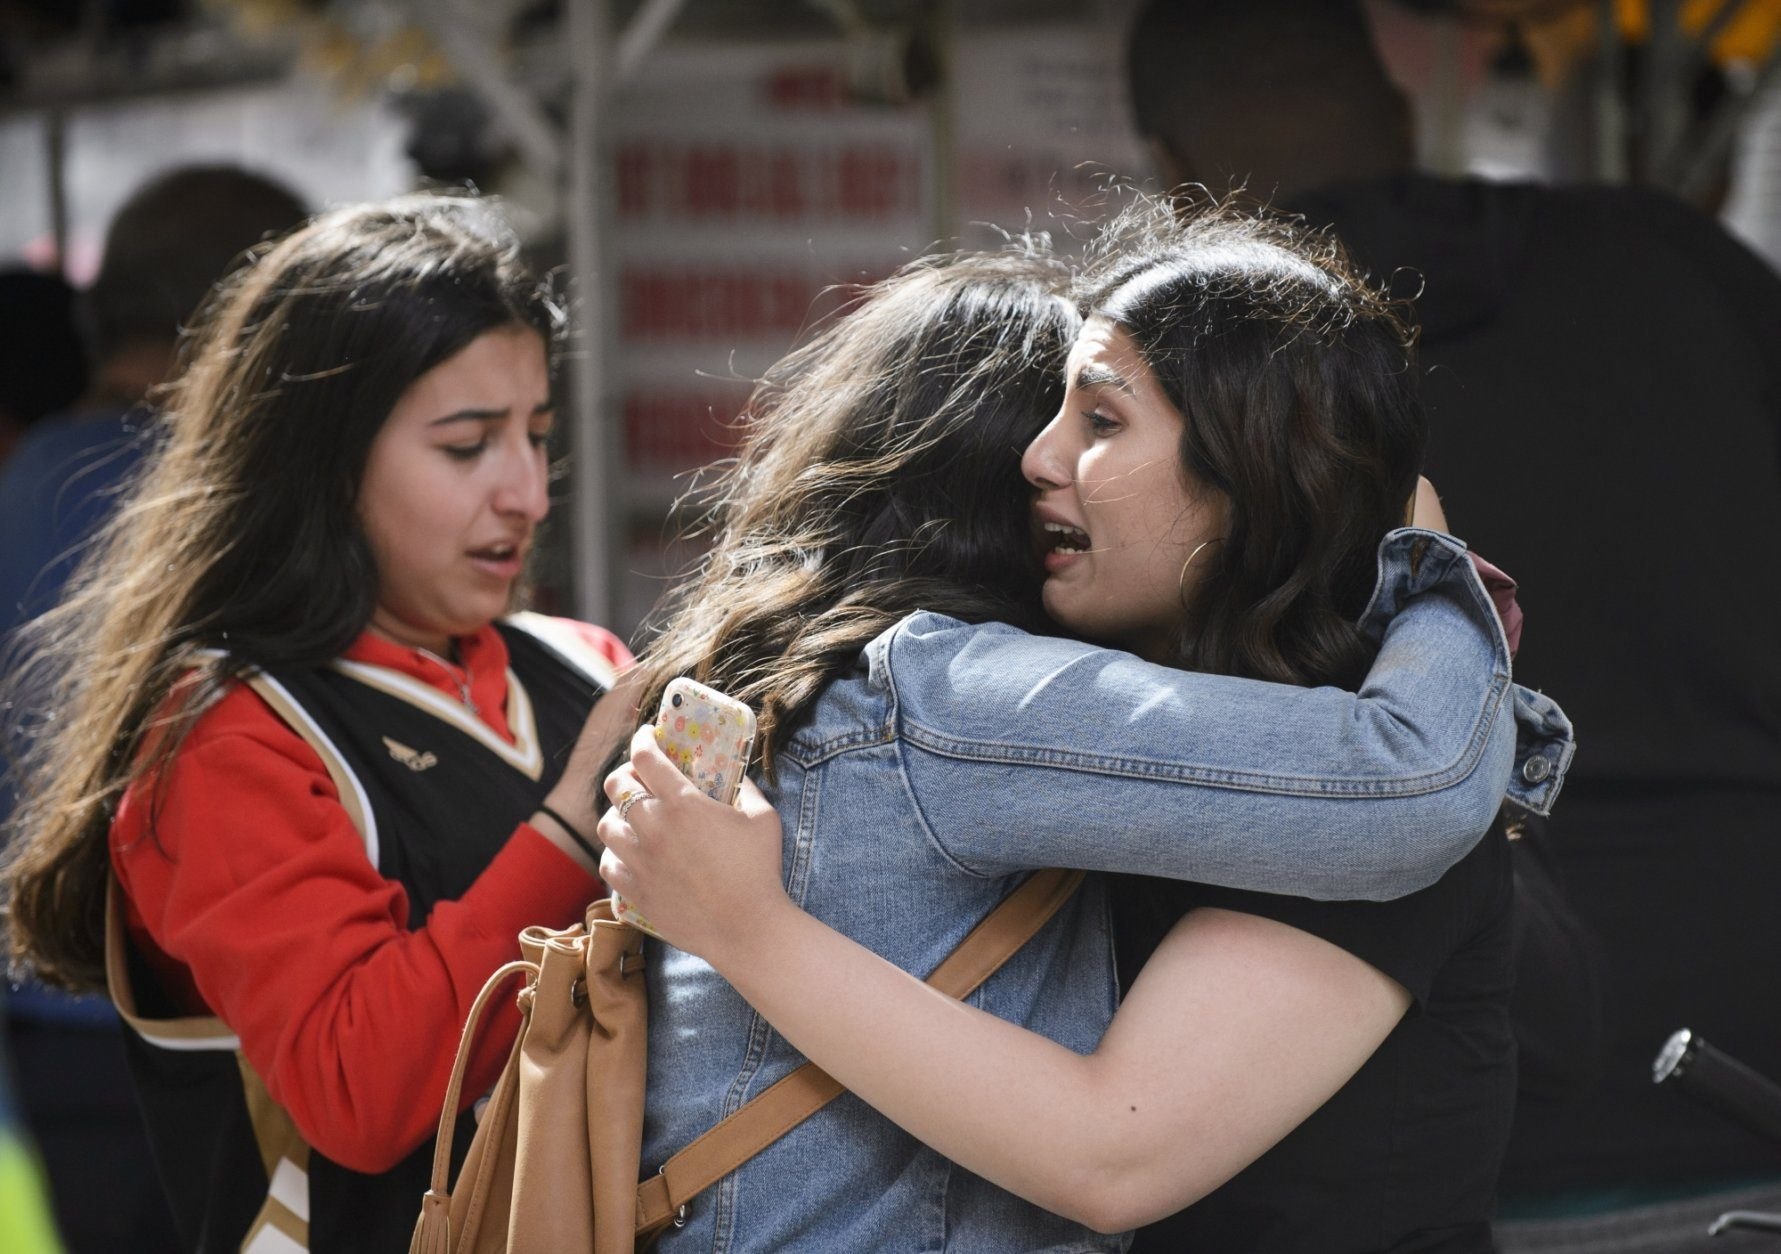 Friends embrace after shots were fired during the Toronto Raptors NBA basketball championship parade in Toronto, Monday, June 17, 2019. (Andrew Lahodynskyj/The Canadian Press via AP)